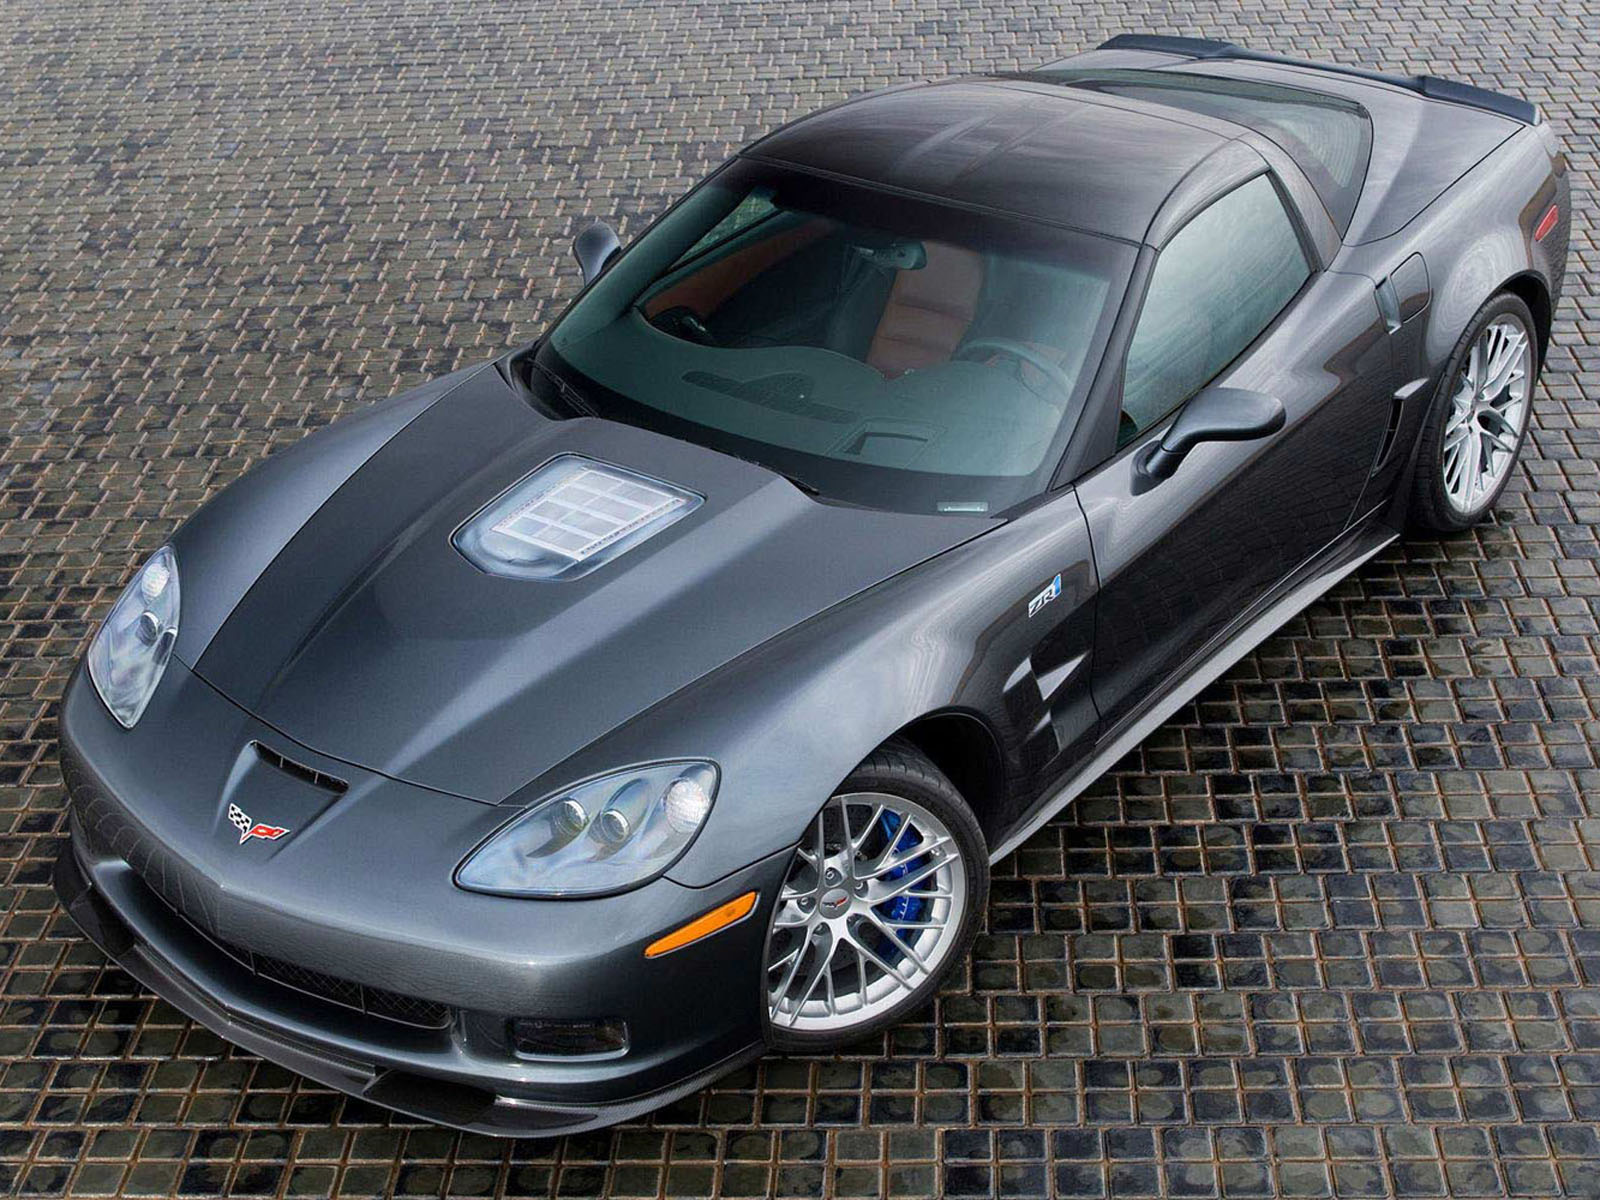 http://3.bp.blogspot.com/-co-HhWJpLJA/T0neBZcAZiI/AAAAAAAAAbI/x9i9onG9NAA/s1600/Chevy+Corvette+ZR1+Cars+Wallpapers.jpg